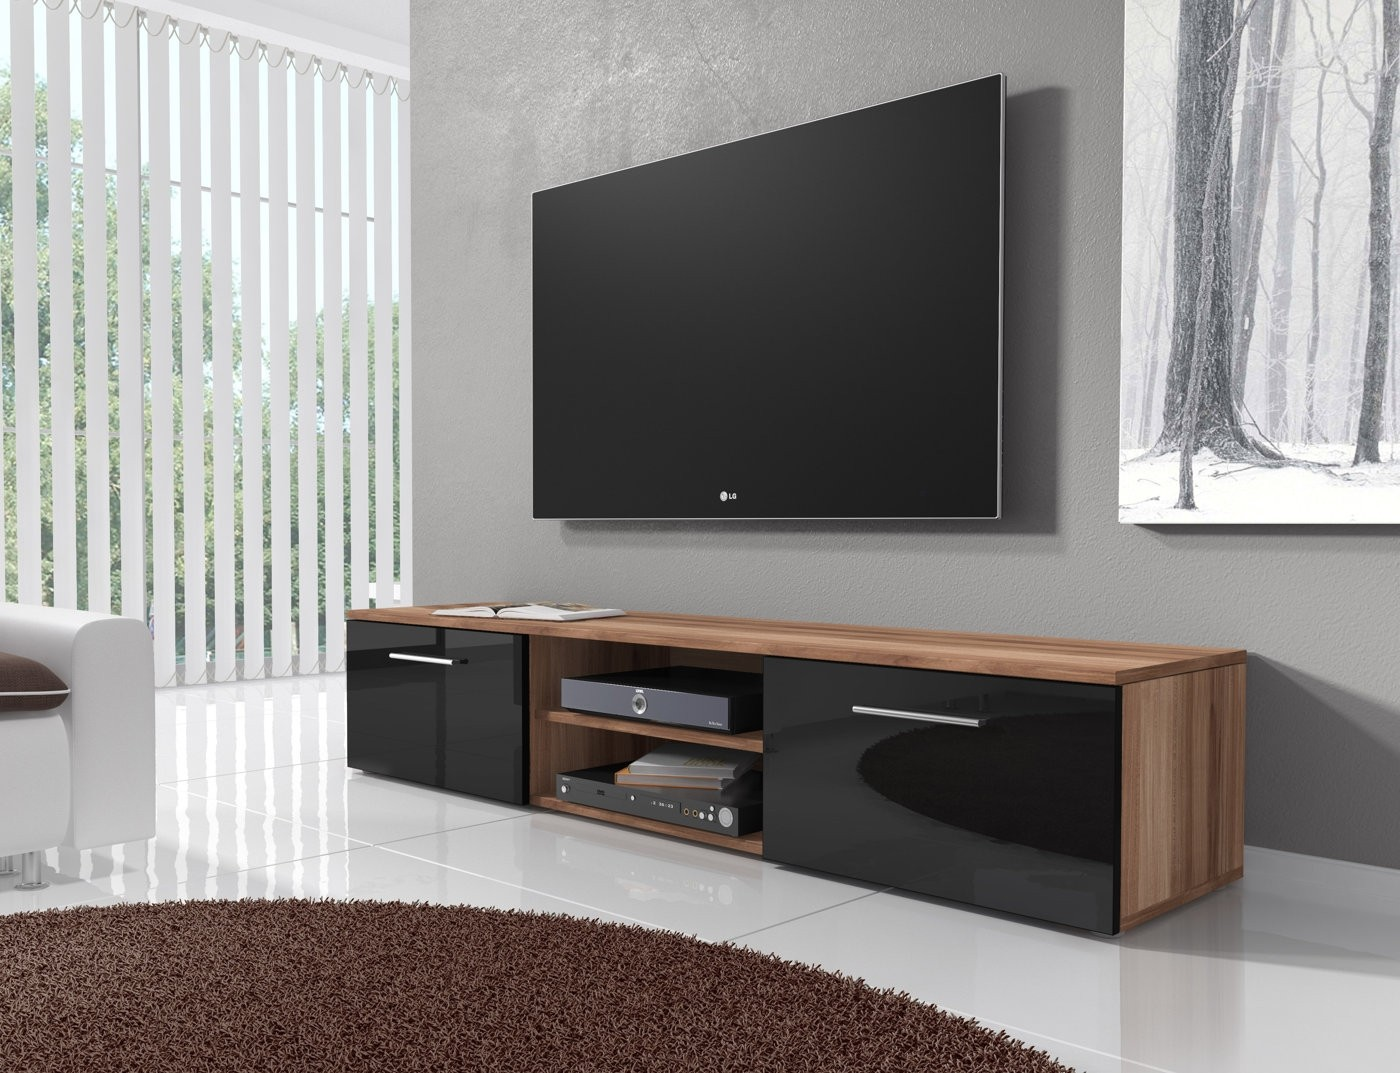 tv meubel basura i zwart eiken 160 cm meubella. Black Bedroom Furniture Sets. Home Design Ideas